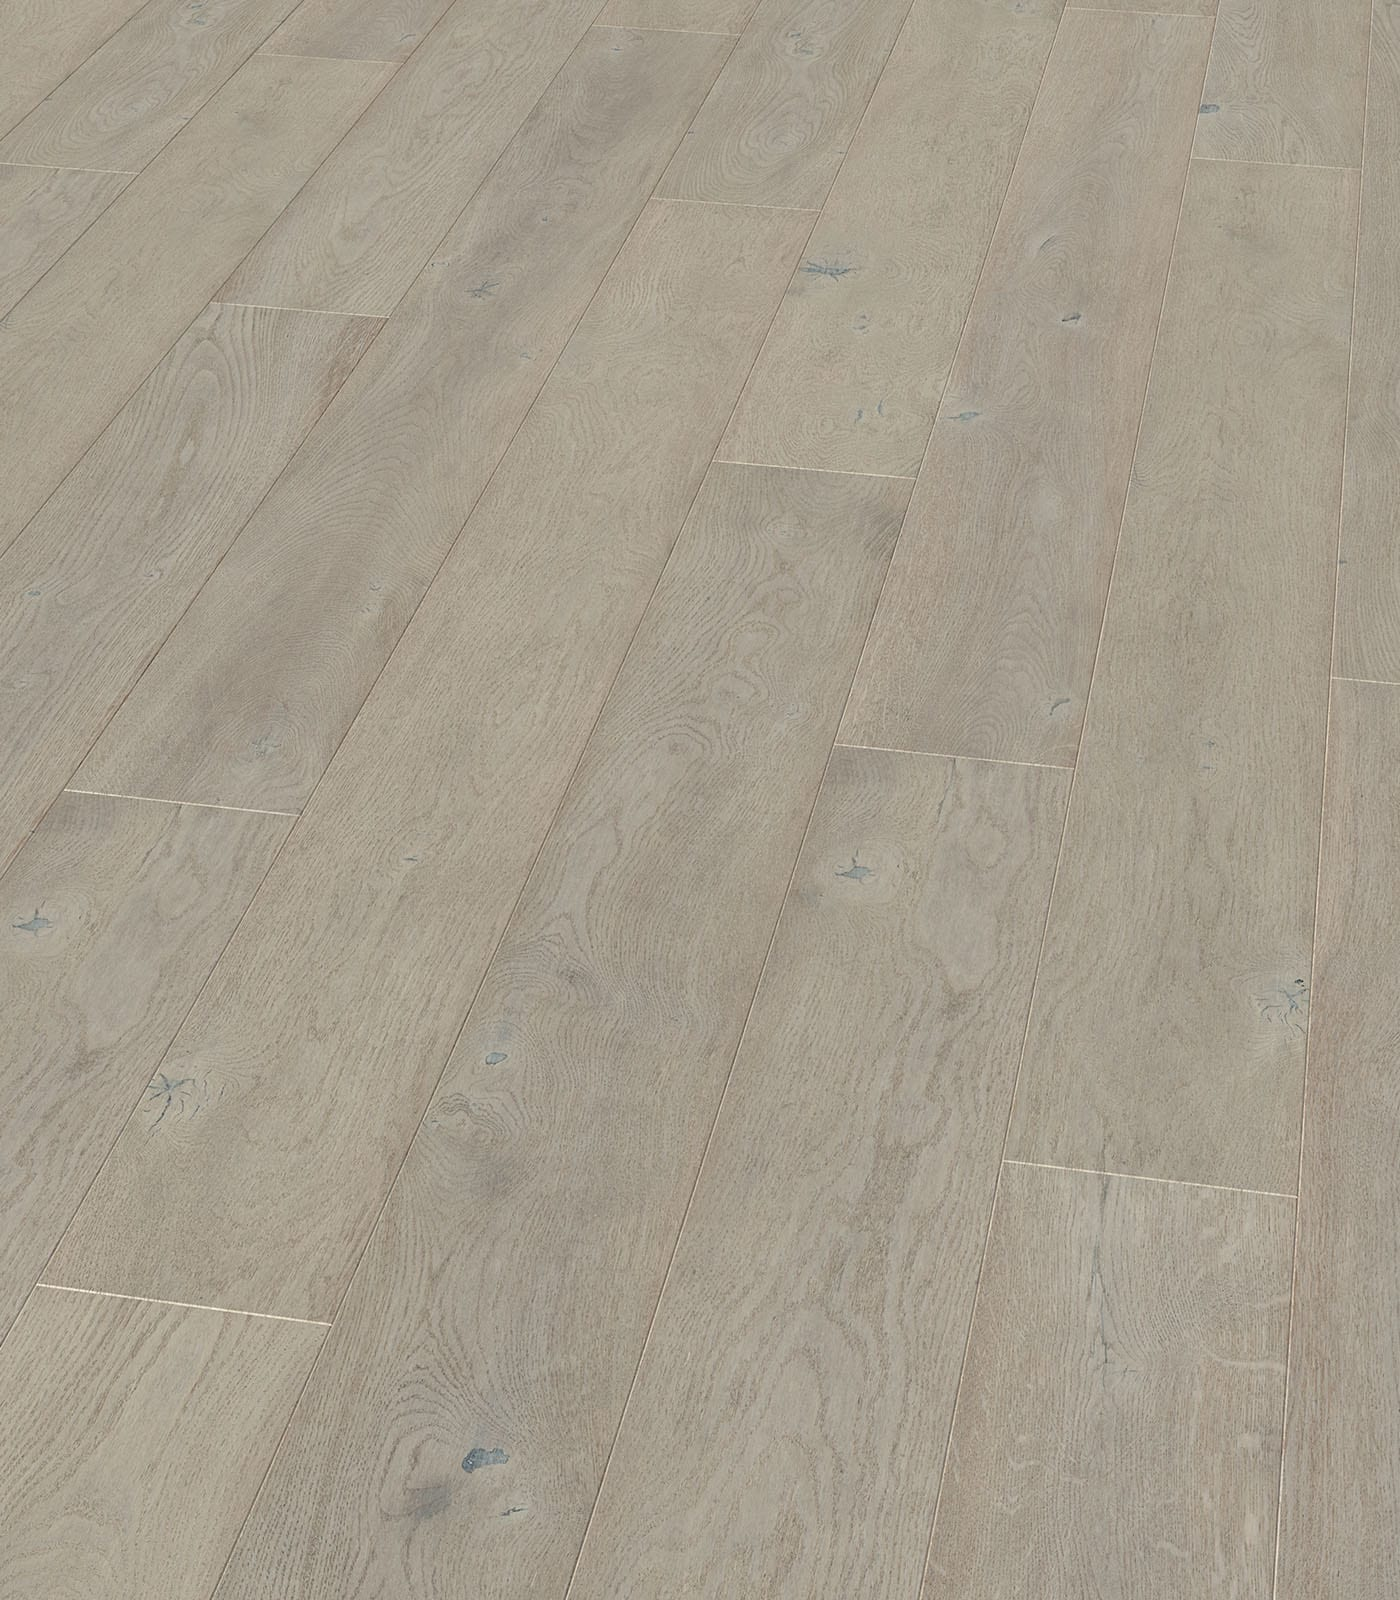 Zanzibar-European Oak Floors-Lifestyle Collection-angle